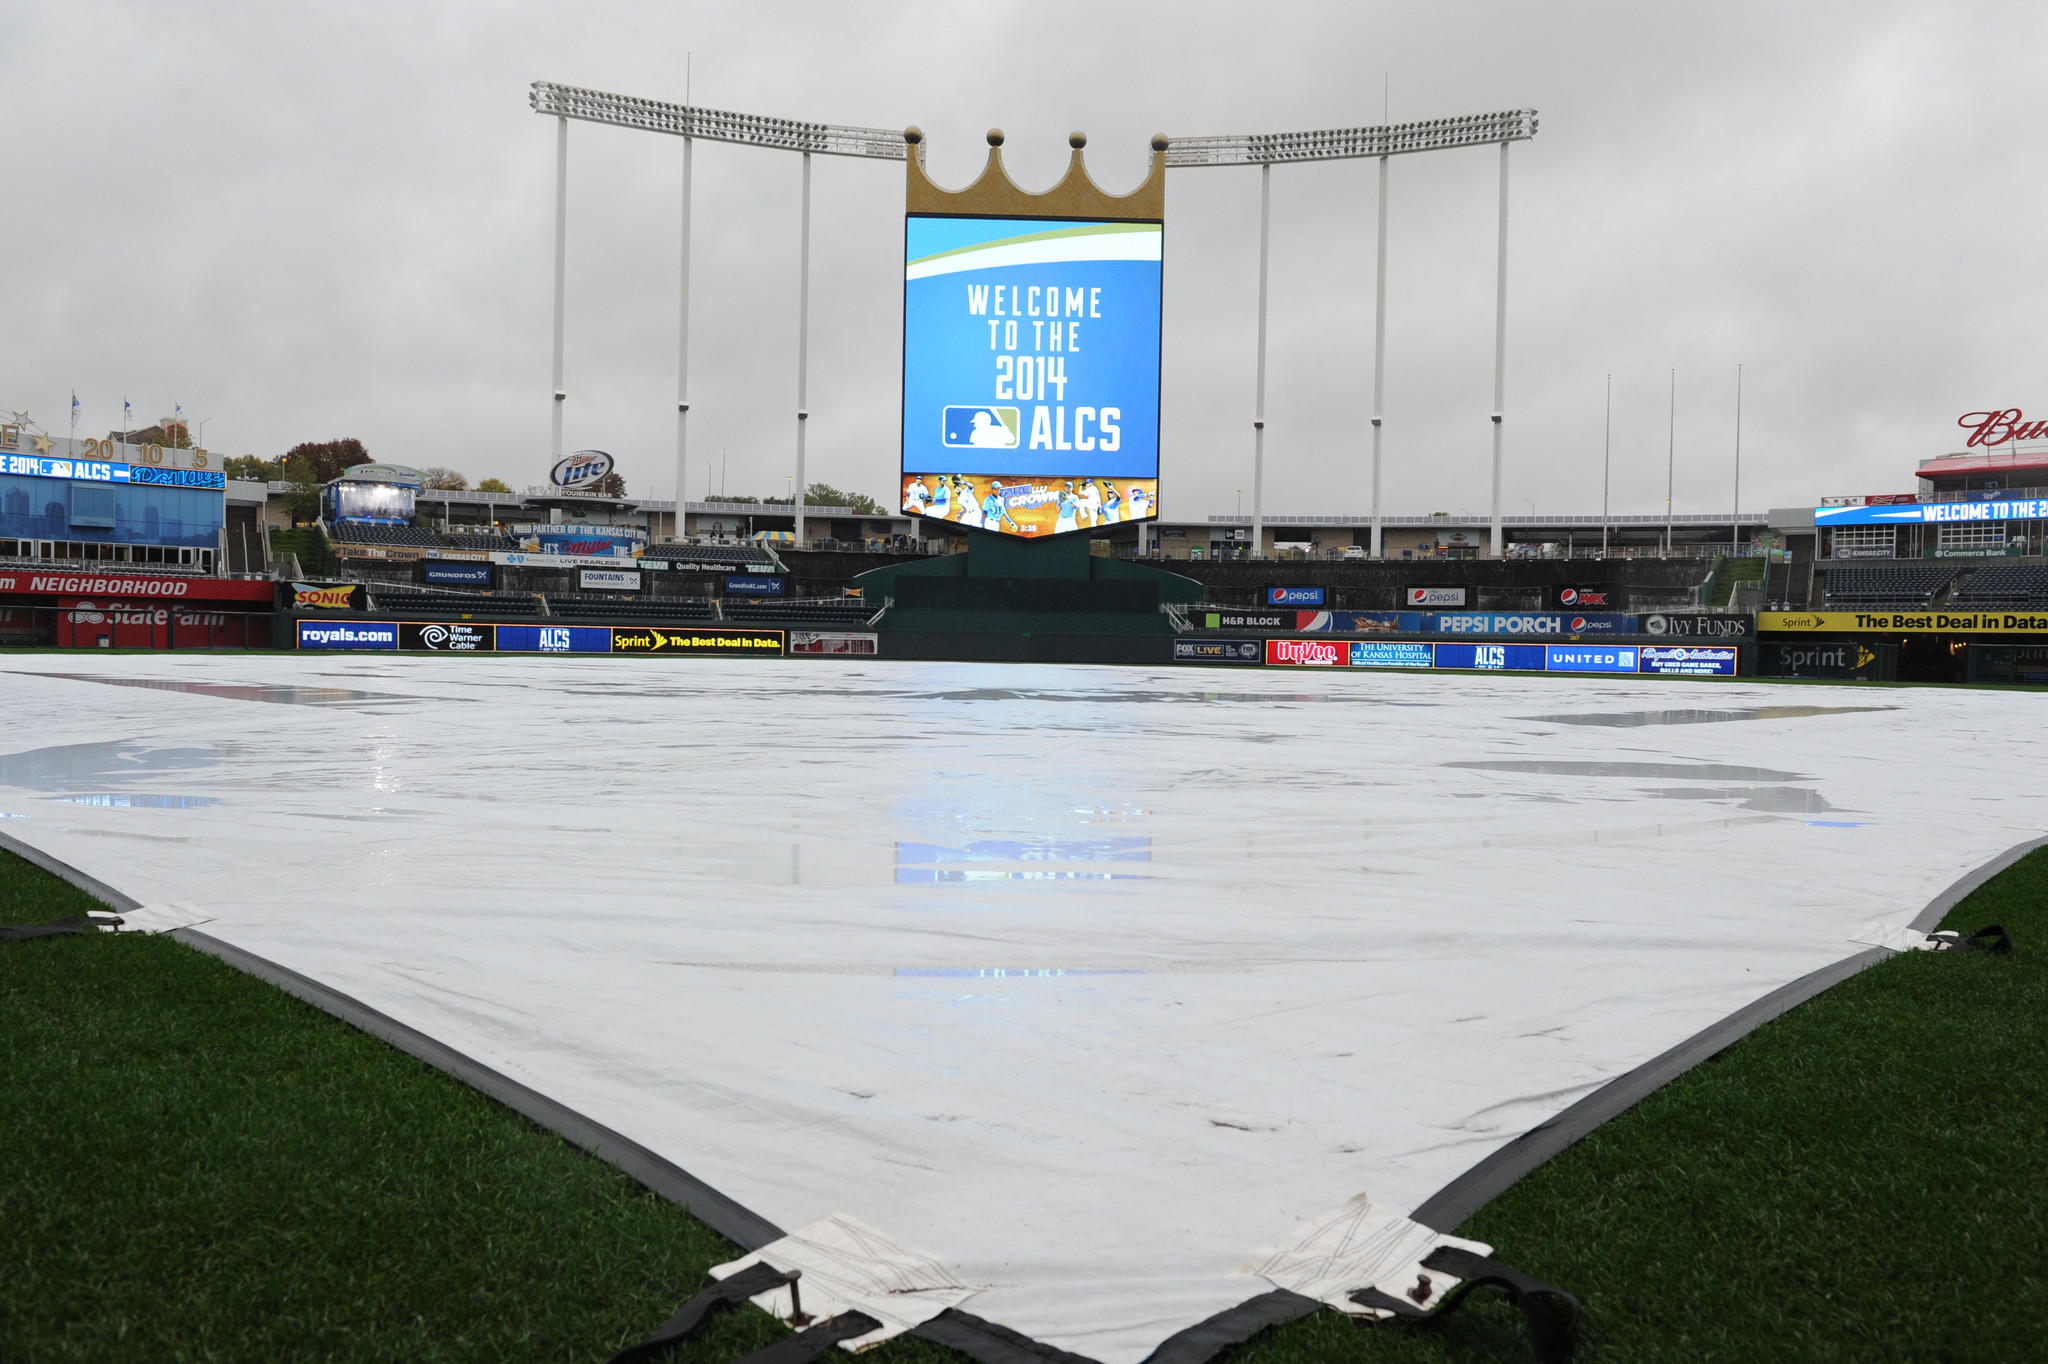 The tarp remains on the field at Kauffman Stadium as Game 3 of the American League Championship Series between the Orioles and the Kansas City Royals was postponed because of rain.